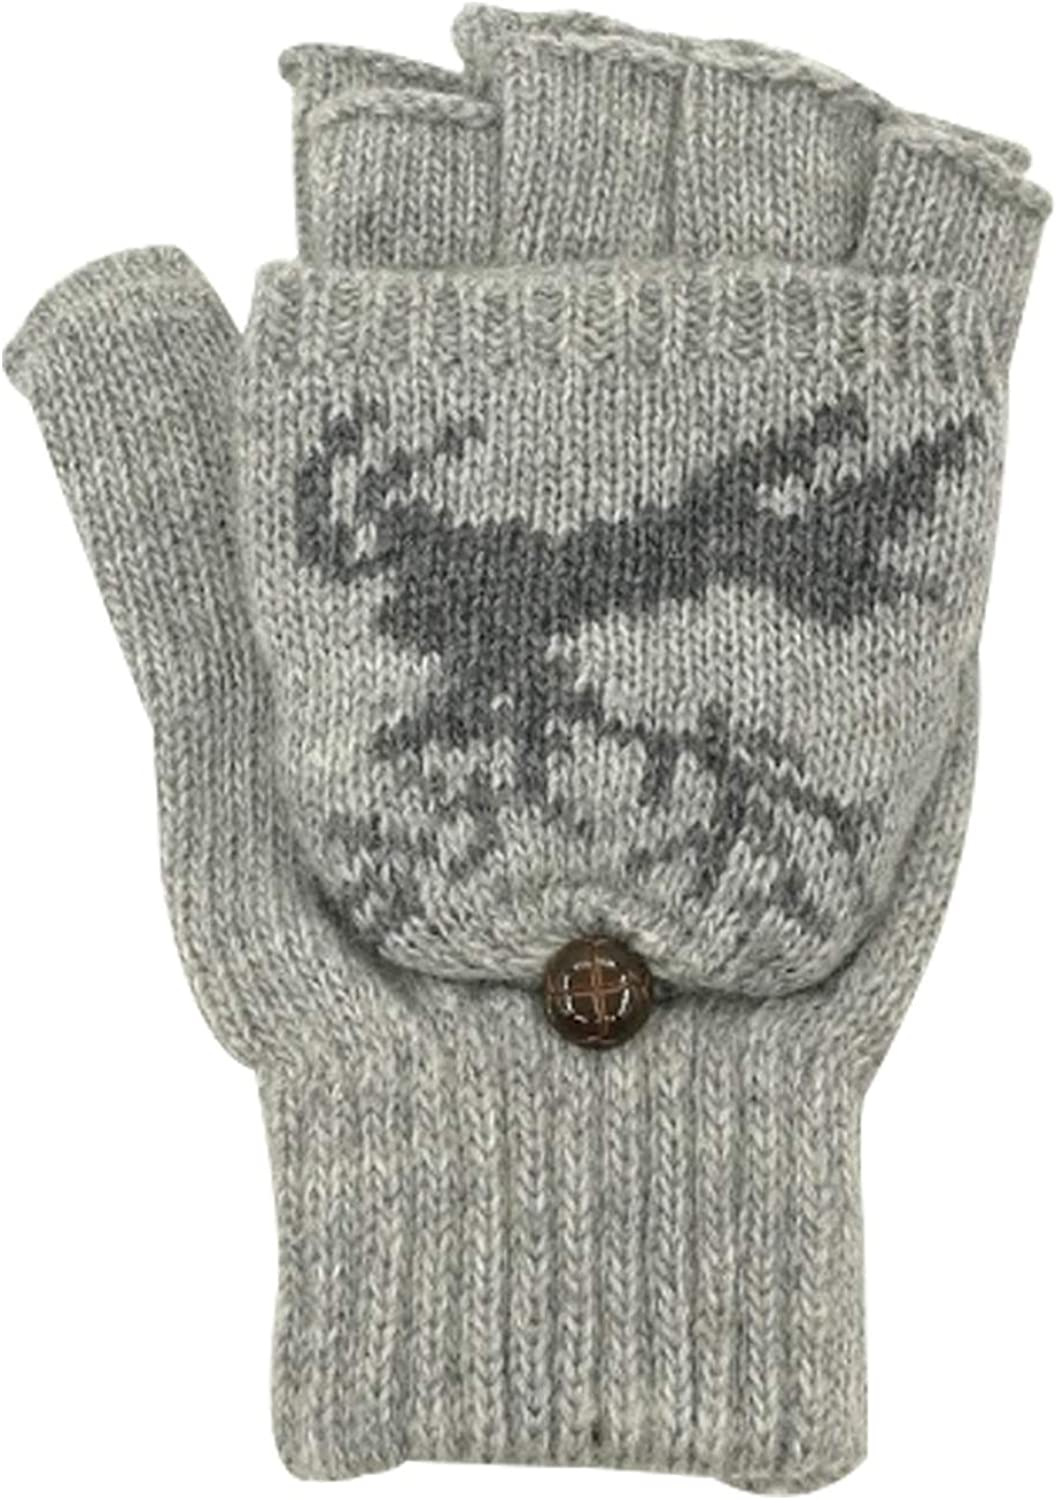 Jueshanzj Women's Wool Knitted Gloves with Mitten Cover